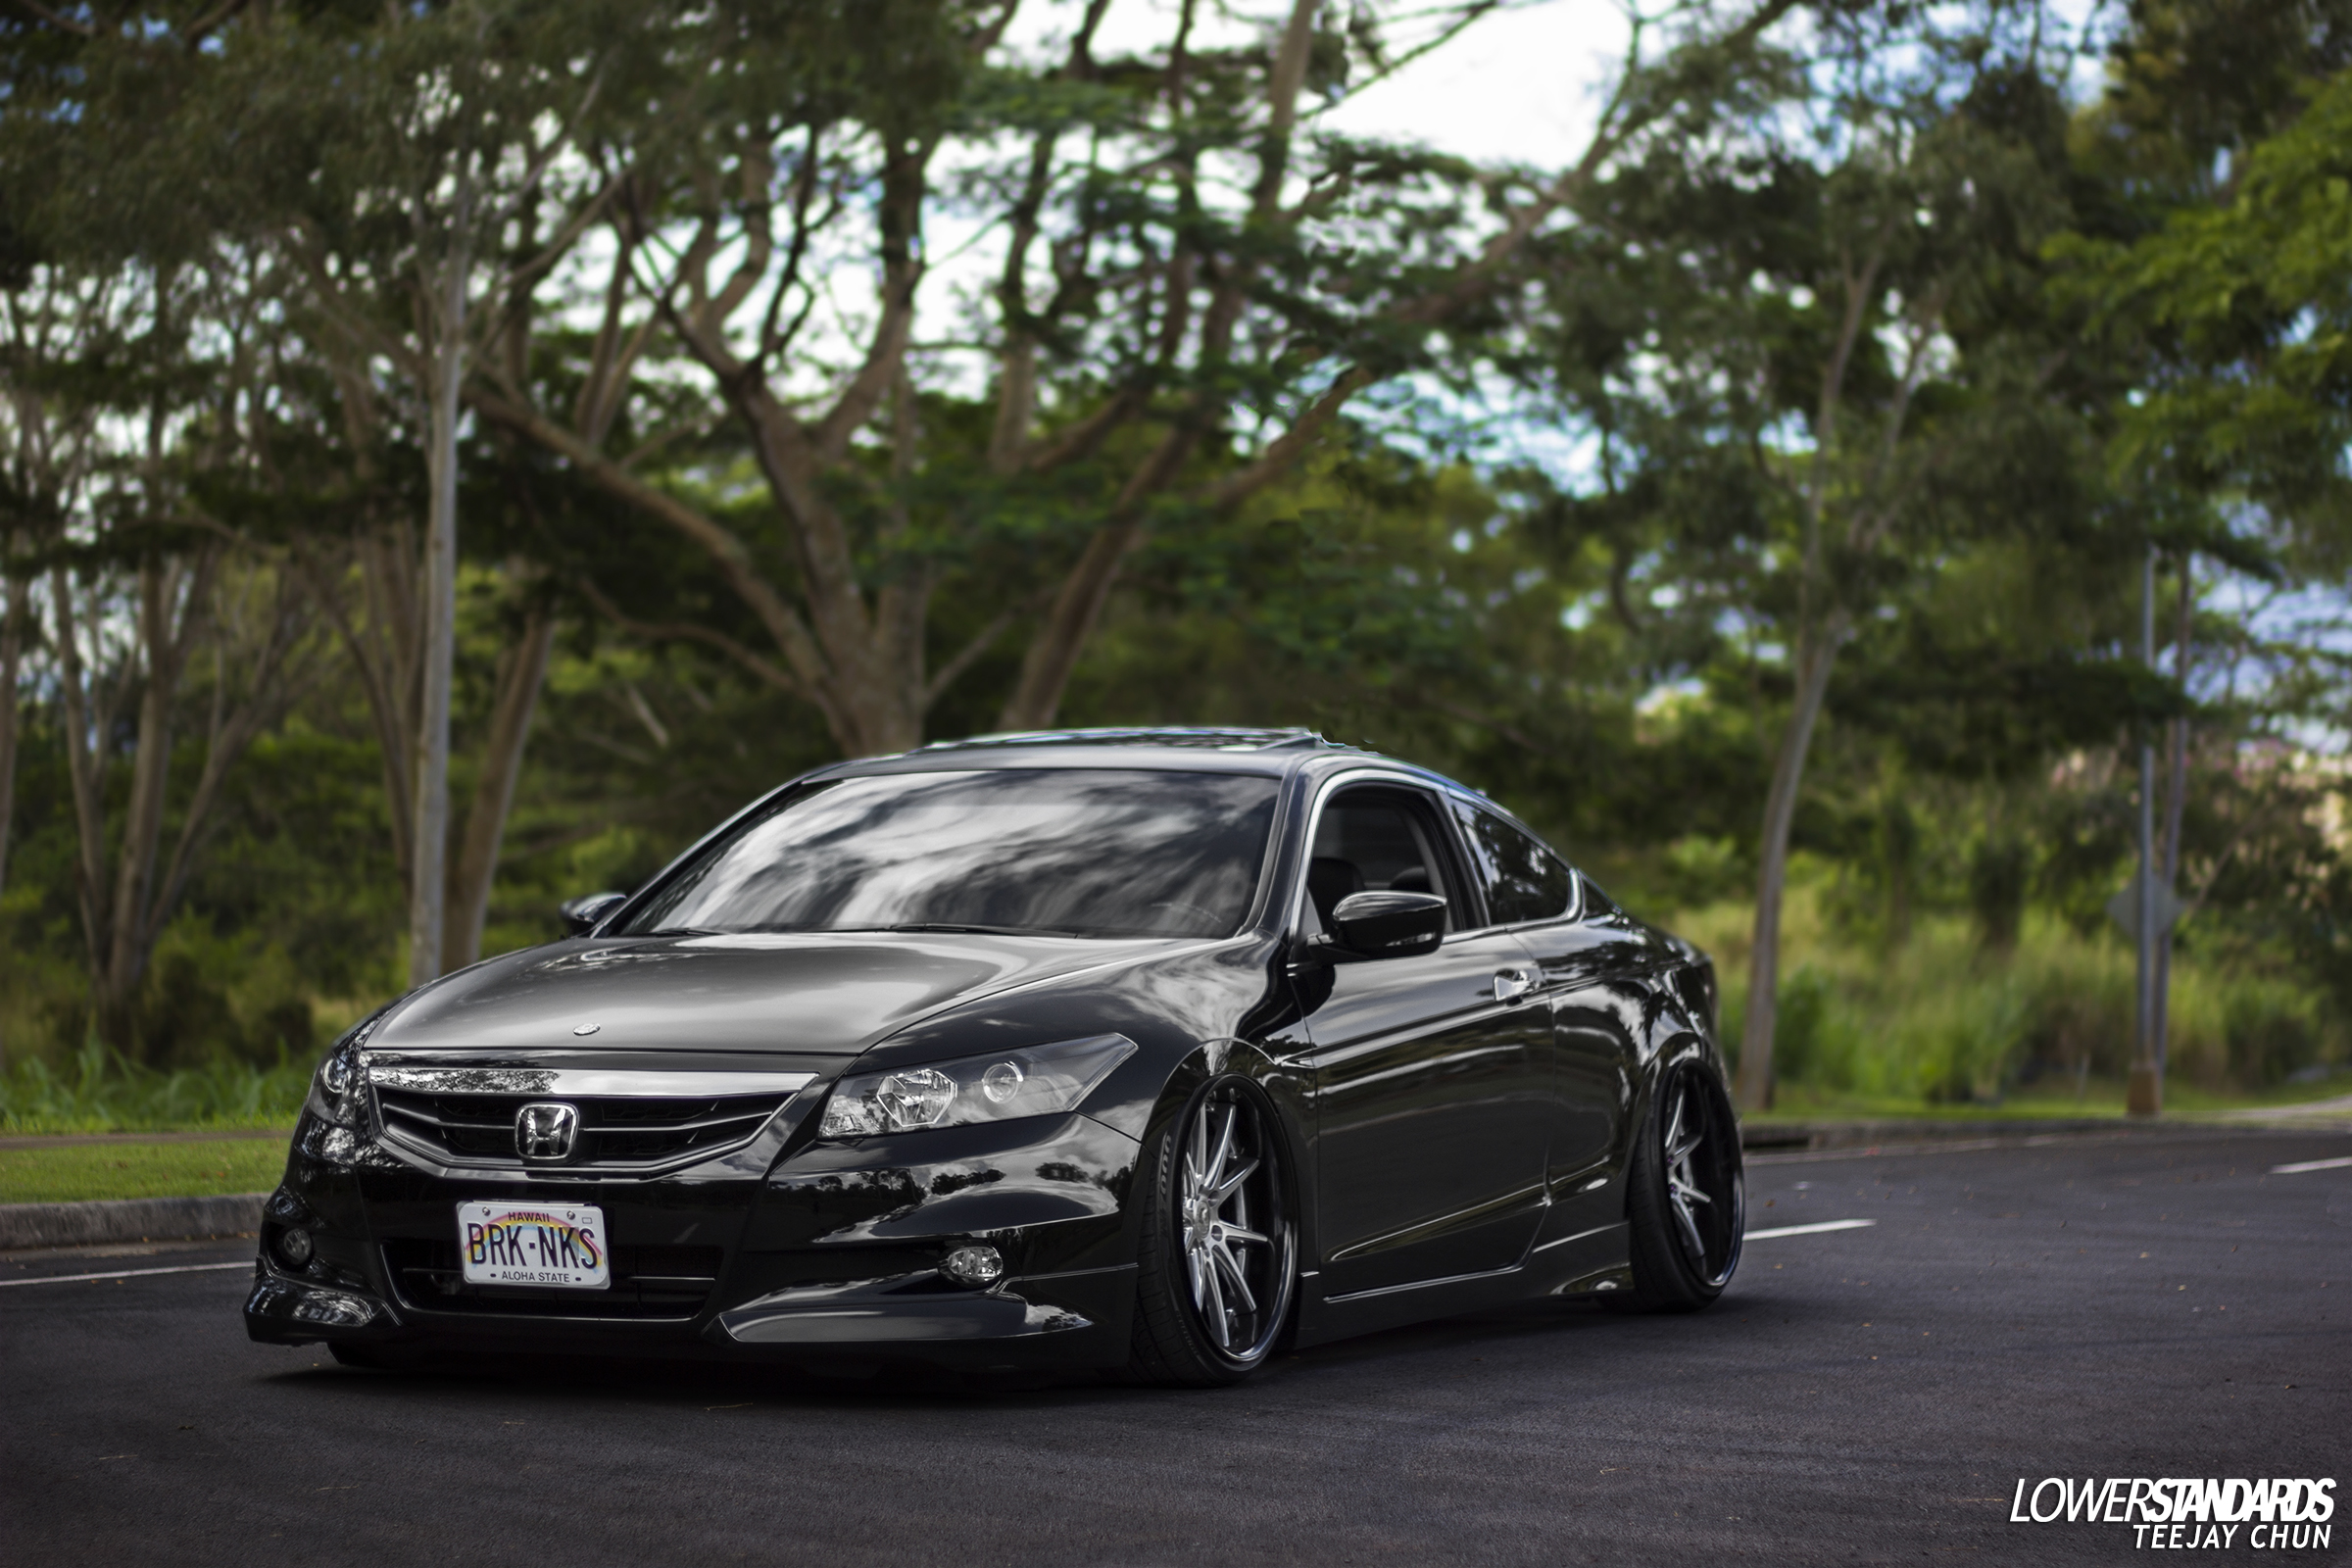 Inspired Preston Saguibo S Accord Coupe Lower